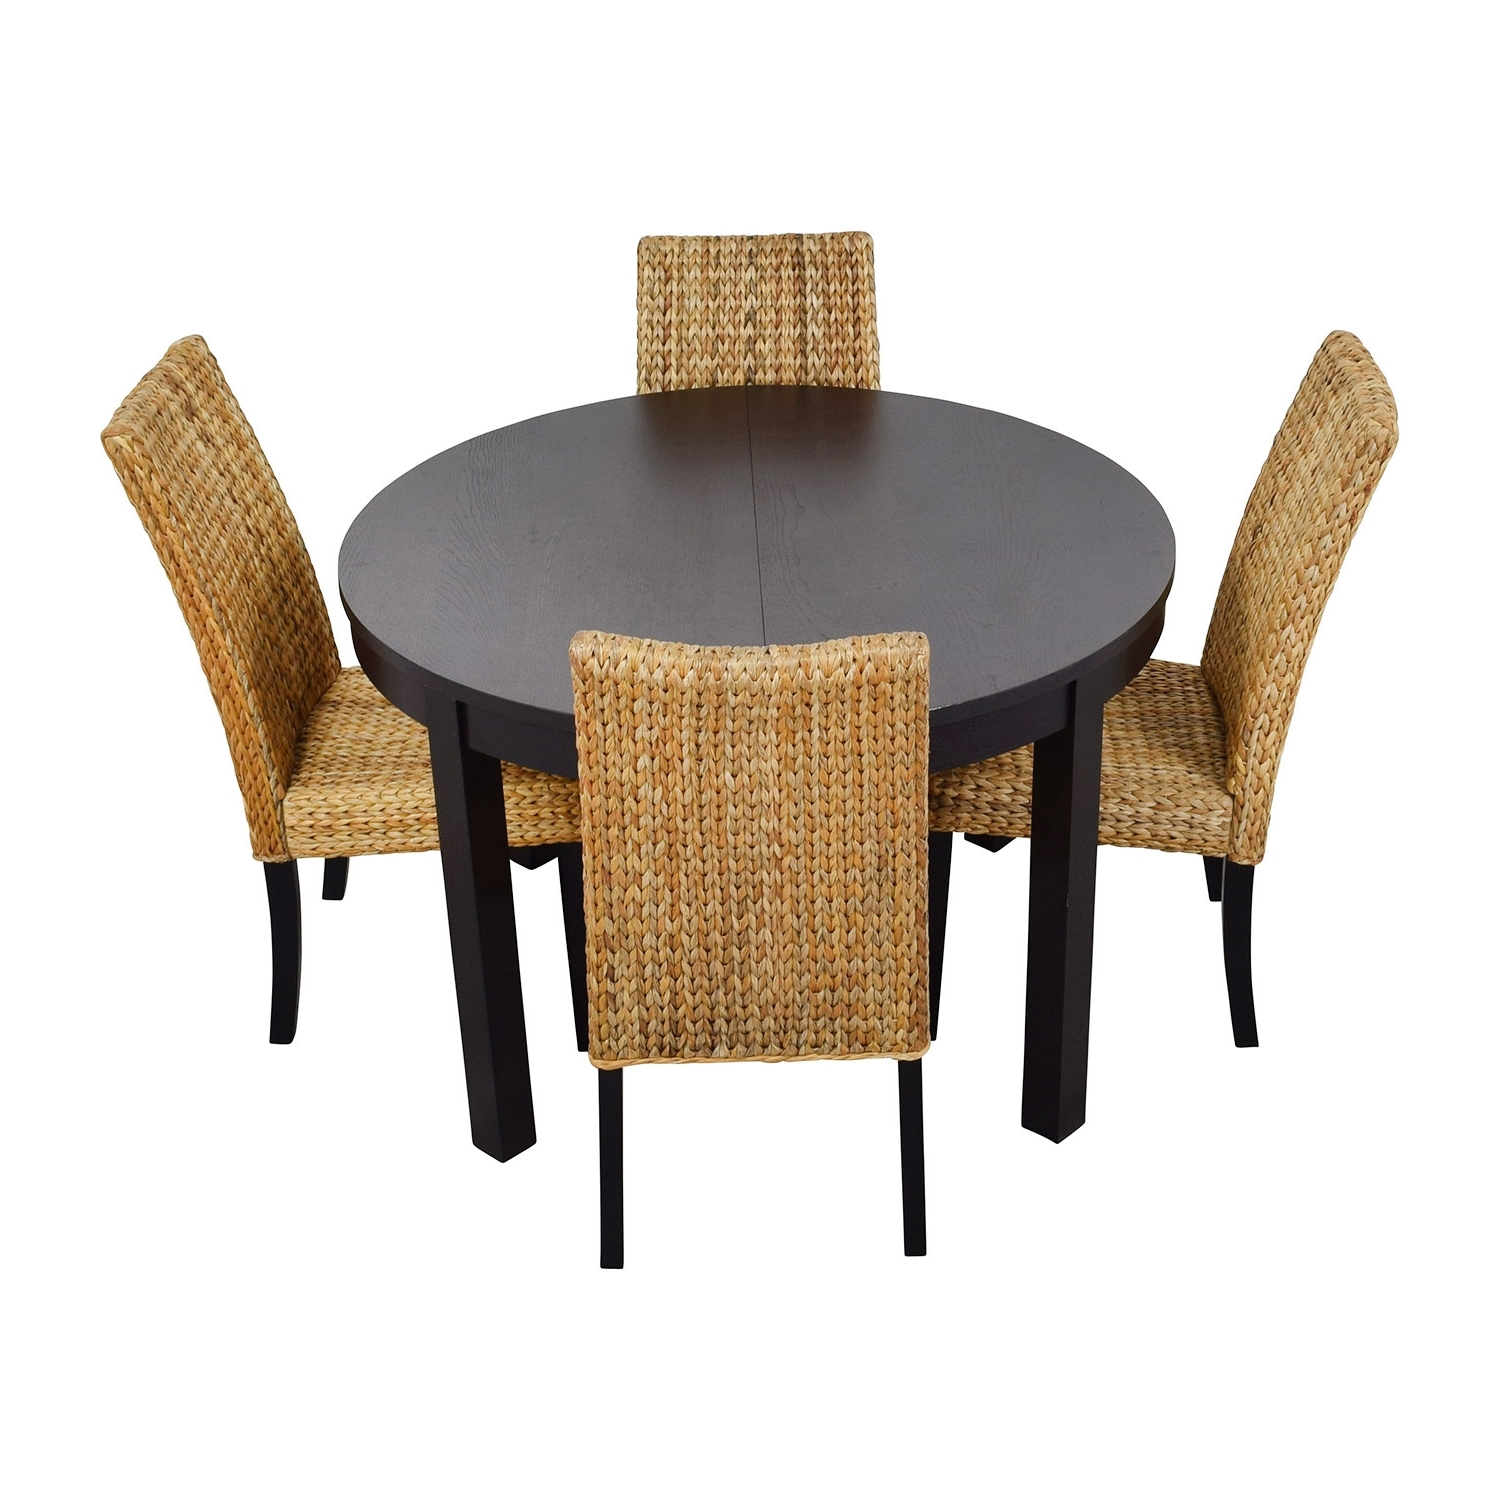 [%66% Off – Macy's & Ikea Round Black Dining Table Set With Four Inside Fashionable Ikea Round Dining Tables Set|Ikea Round Dining Tables Set With Newest 66% Off – Macy's & Ikea Round Black Dining Table Set With Four|Fashionable Ikea Round Dining Tables Set Within 66% Off – Macy's & Ikea Round Black Dining Table Set With Four|2018 66% Off – Macy's & Ikea Round Black Dining Table Set With Four With Regard To Ikea Round Dining Tables Set%] (View 1 of 25)